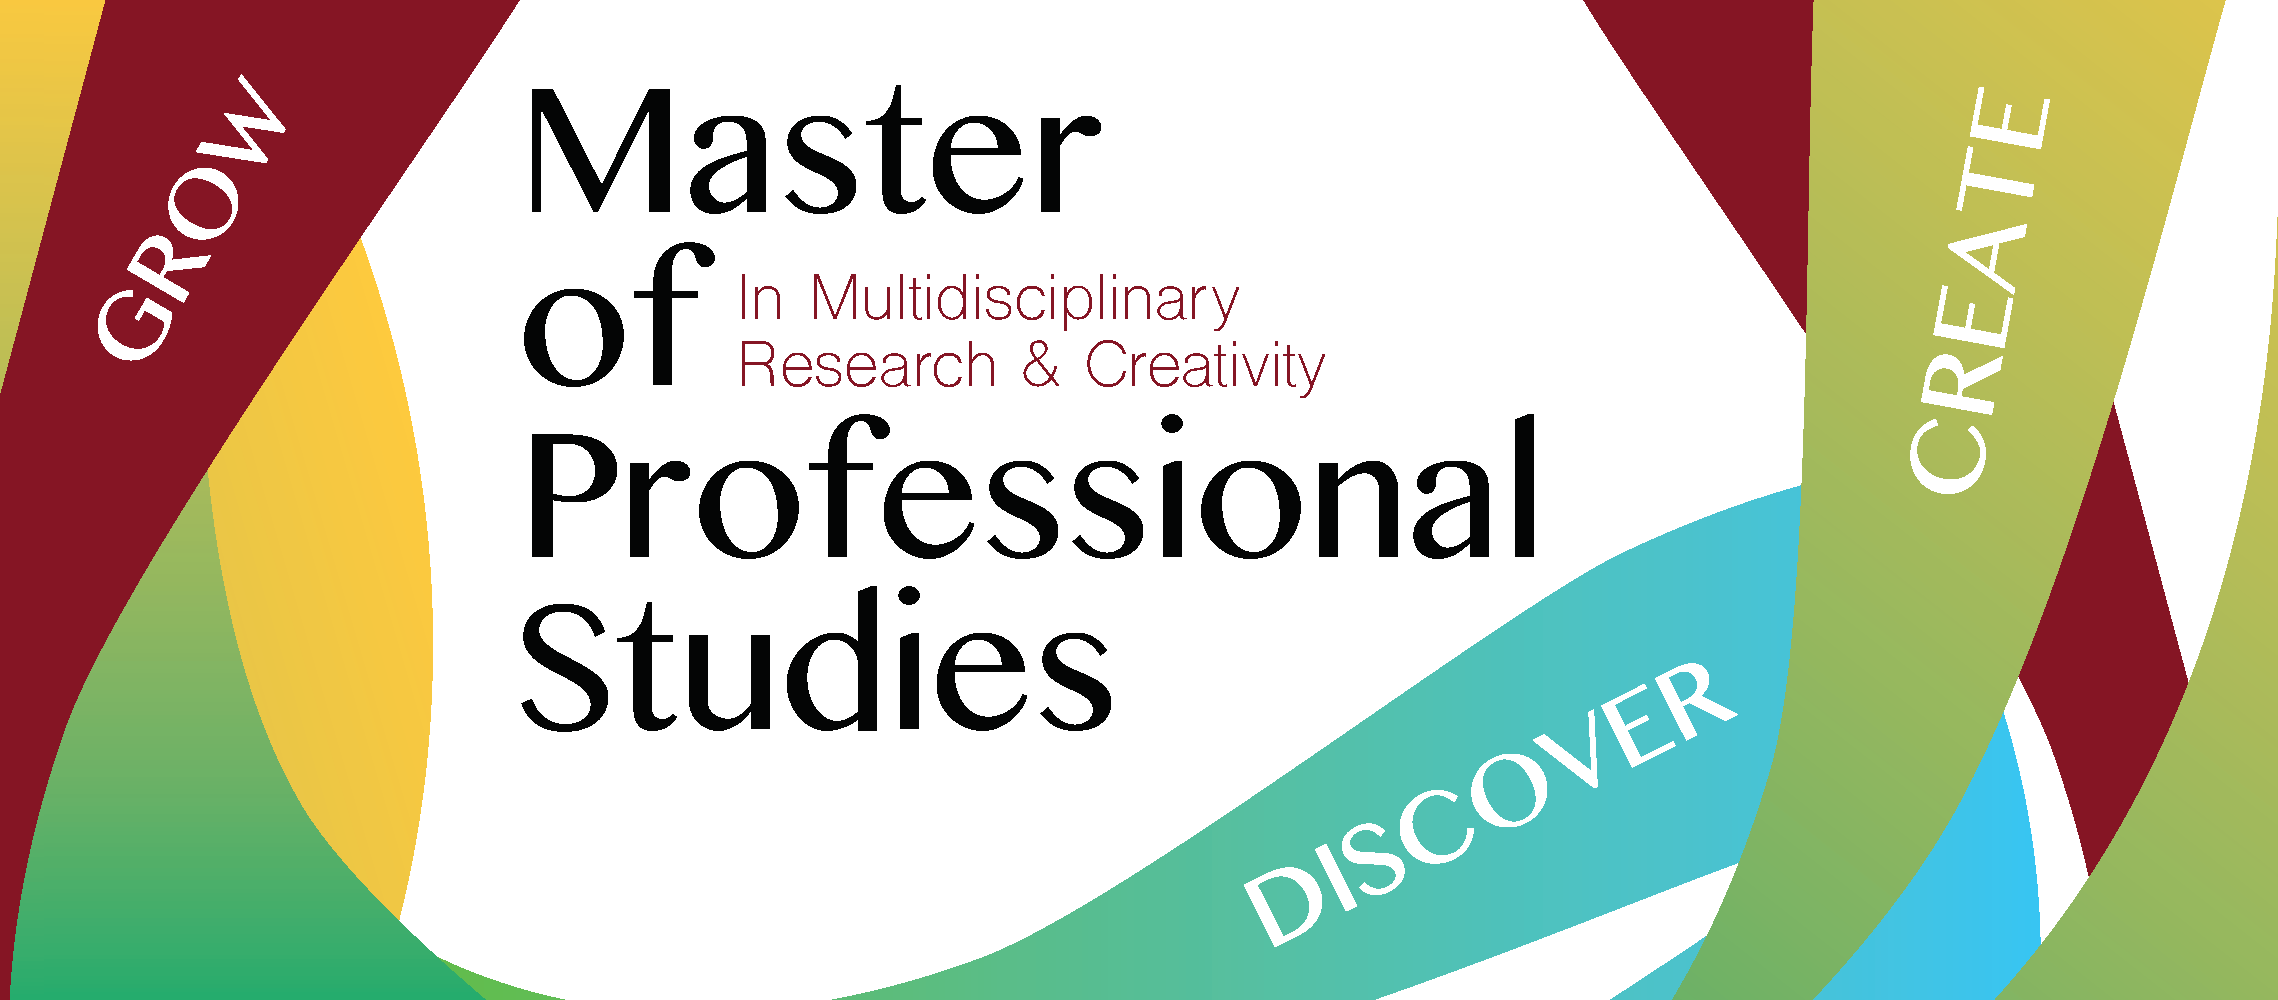 Master of Professional Studies with additional text Grow.Discover. Create in colorful ribbons